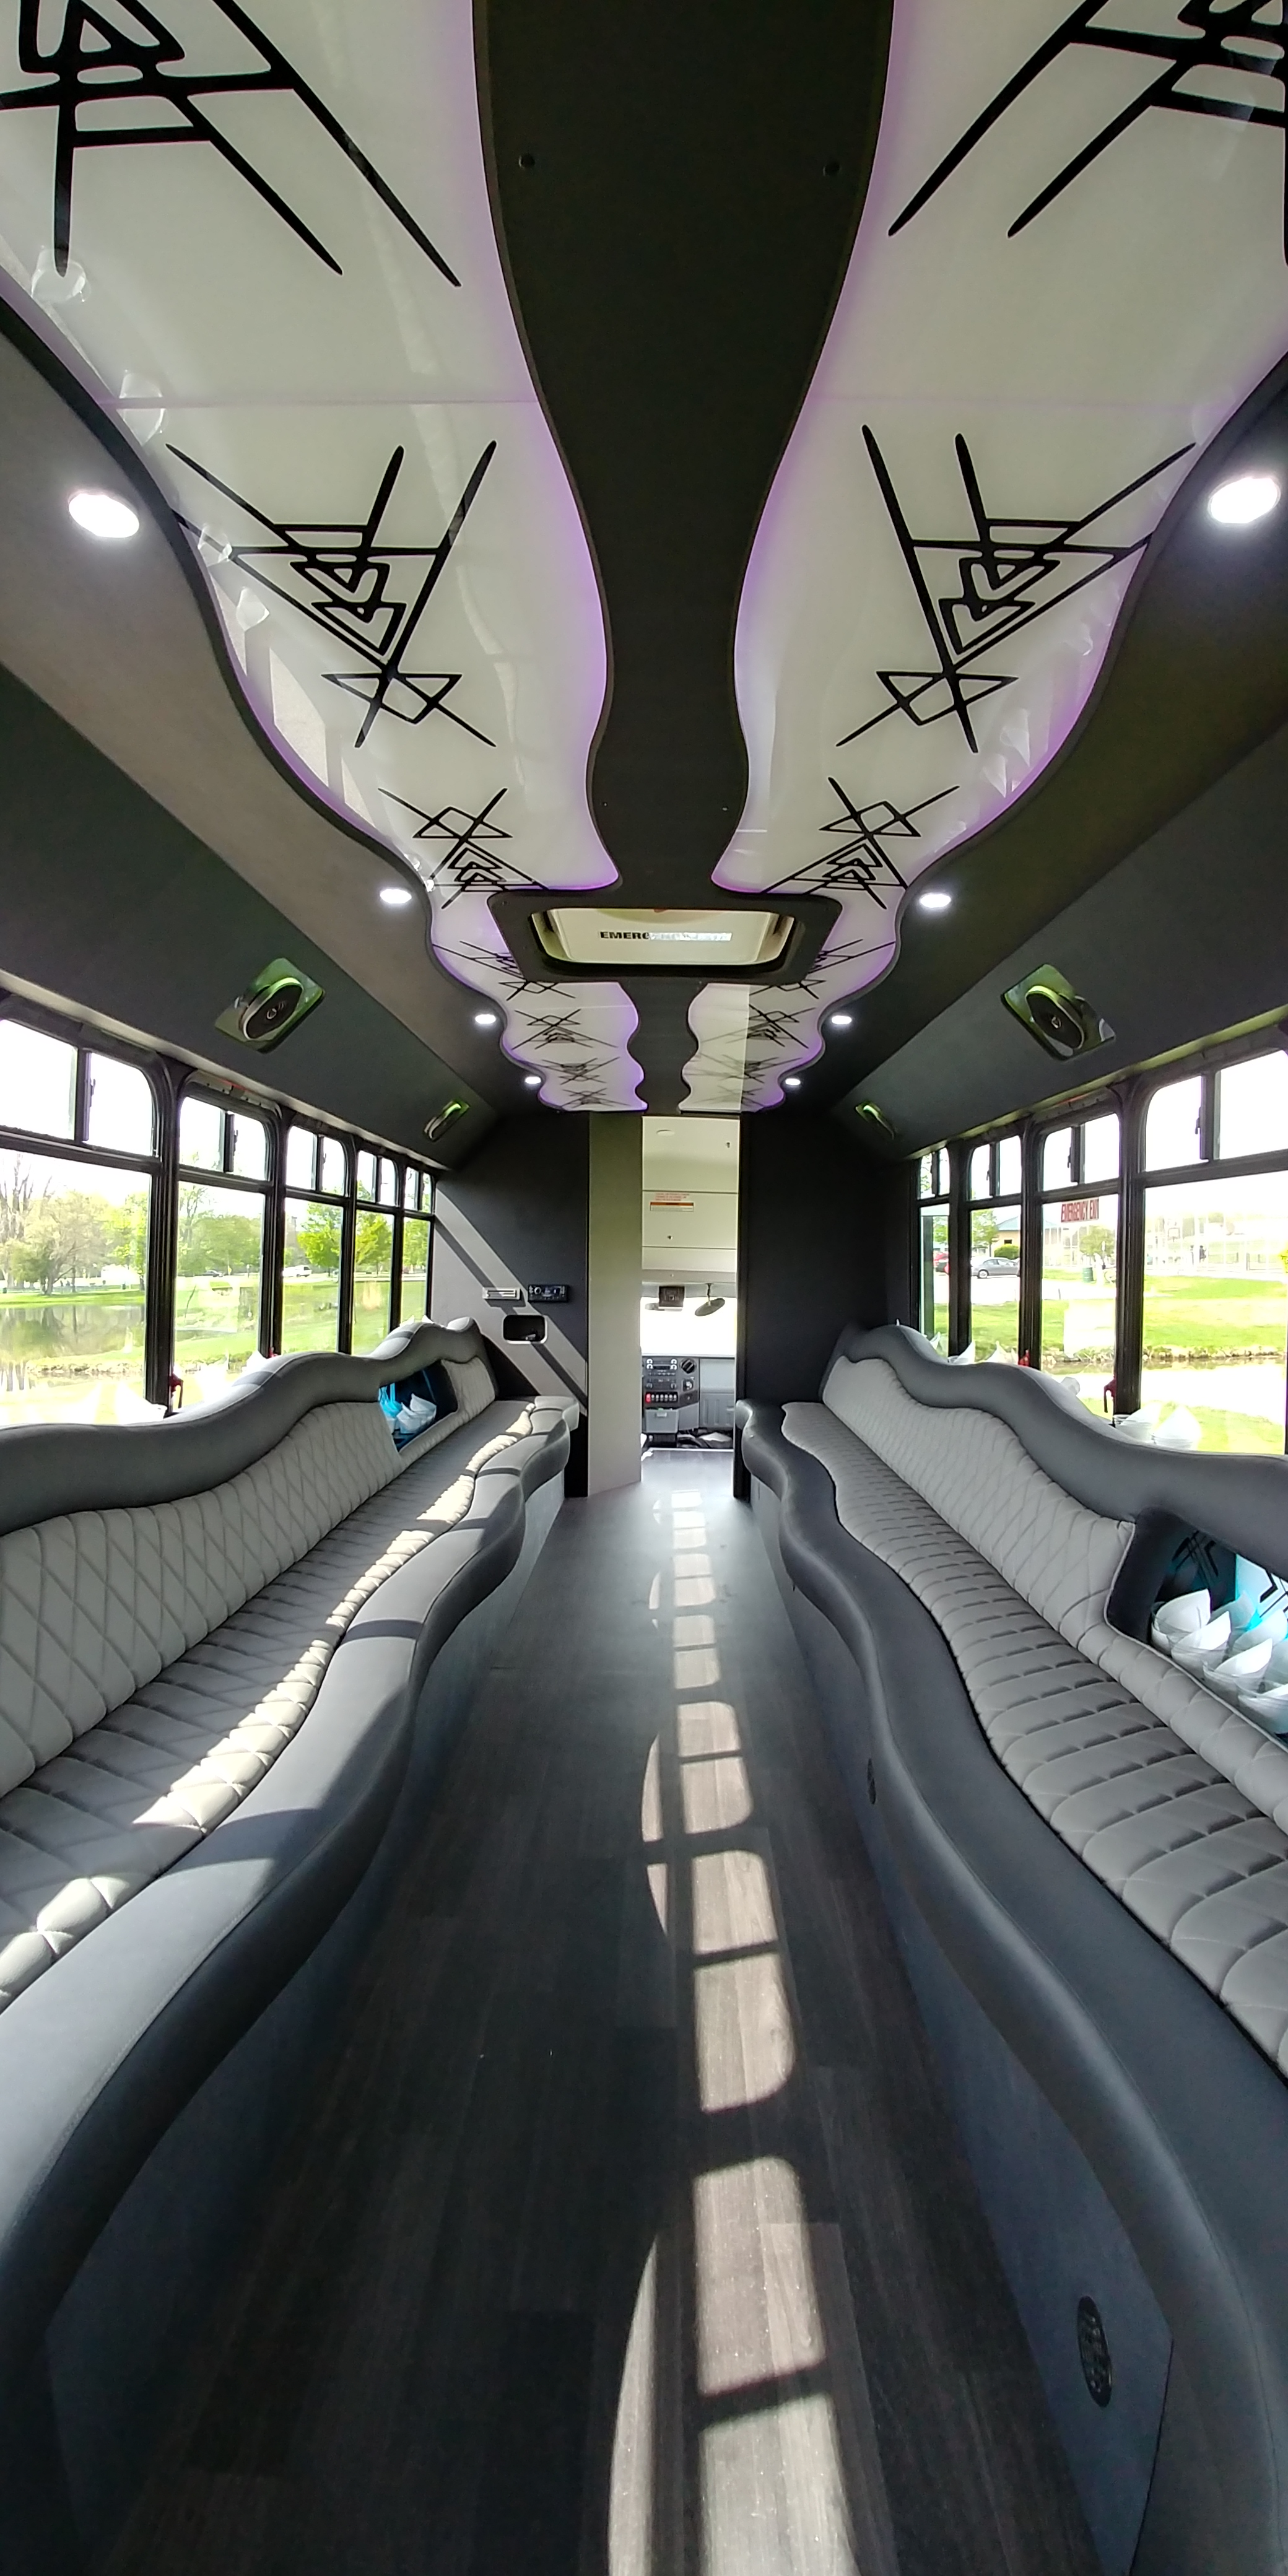 28 Passenger Luxury Limo Bus Interior 7